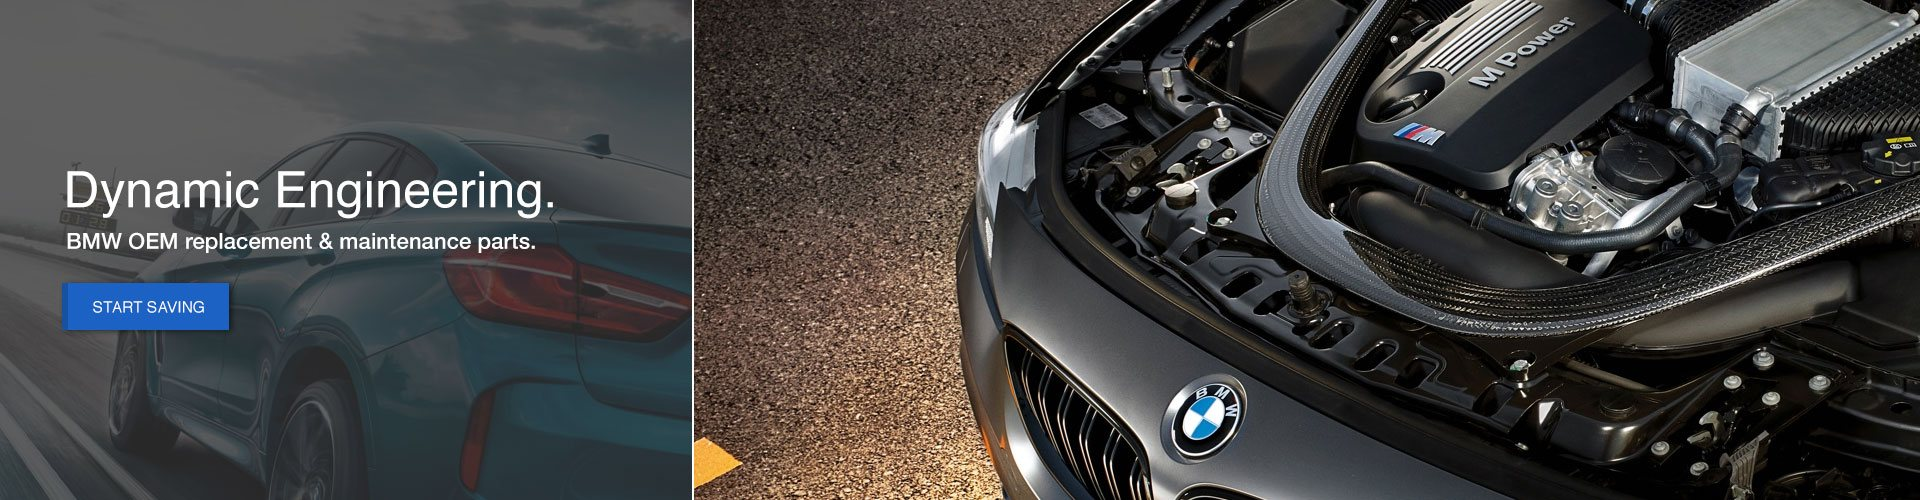 accessories oem index all and cfm on parts view genuine bmw diagram